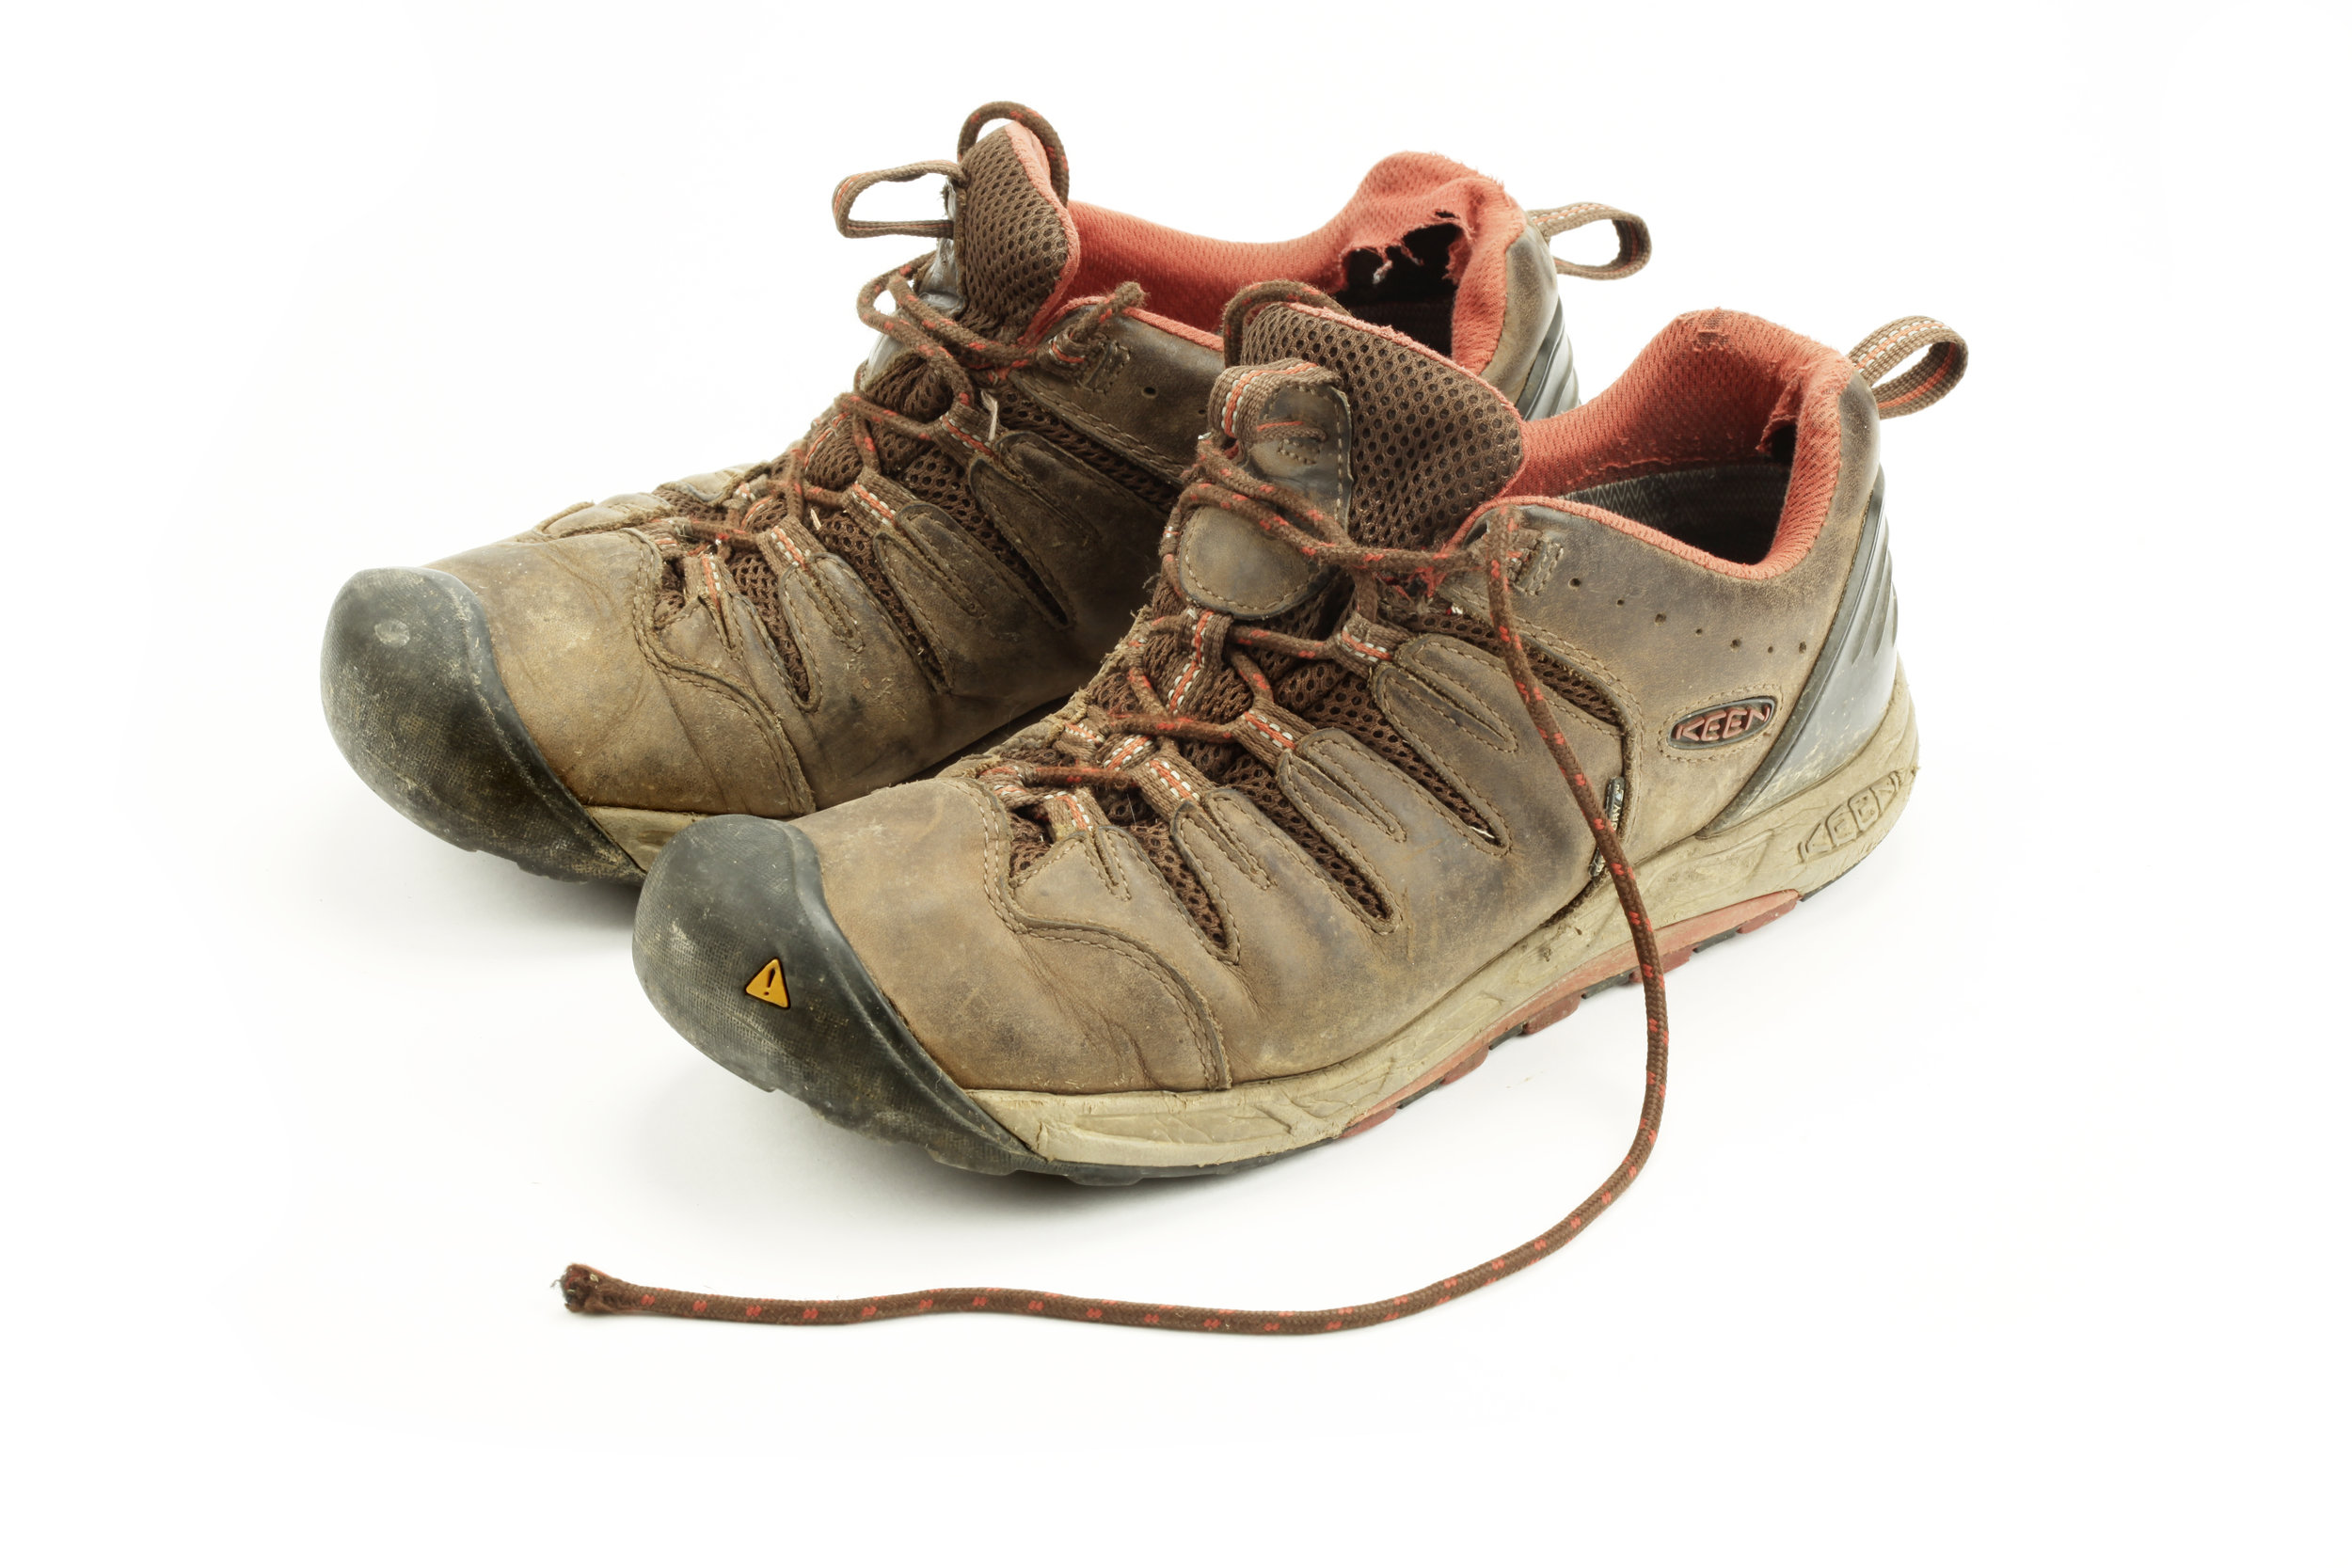 e76c5640d5c Brand: Other — Gear Footwear — Live for the Outdoors